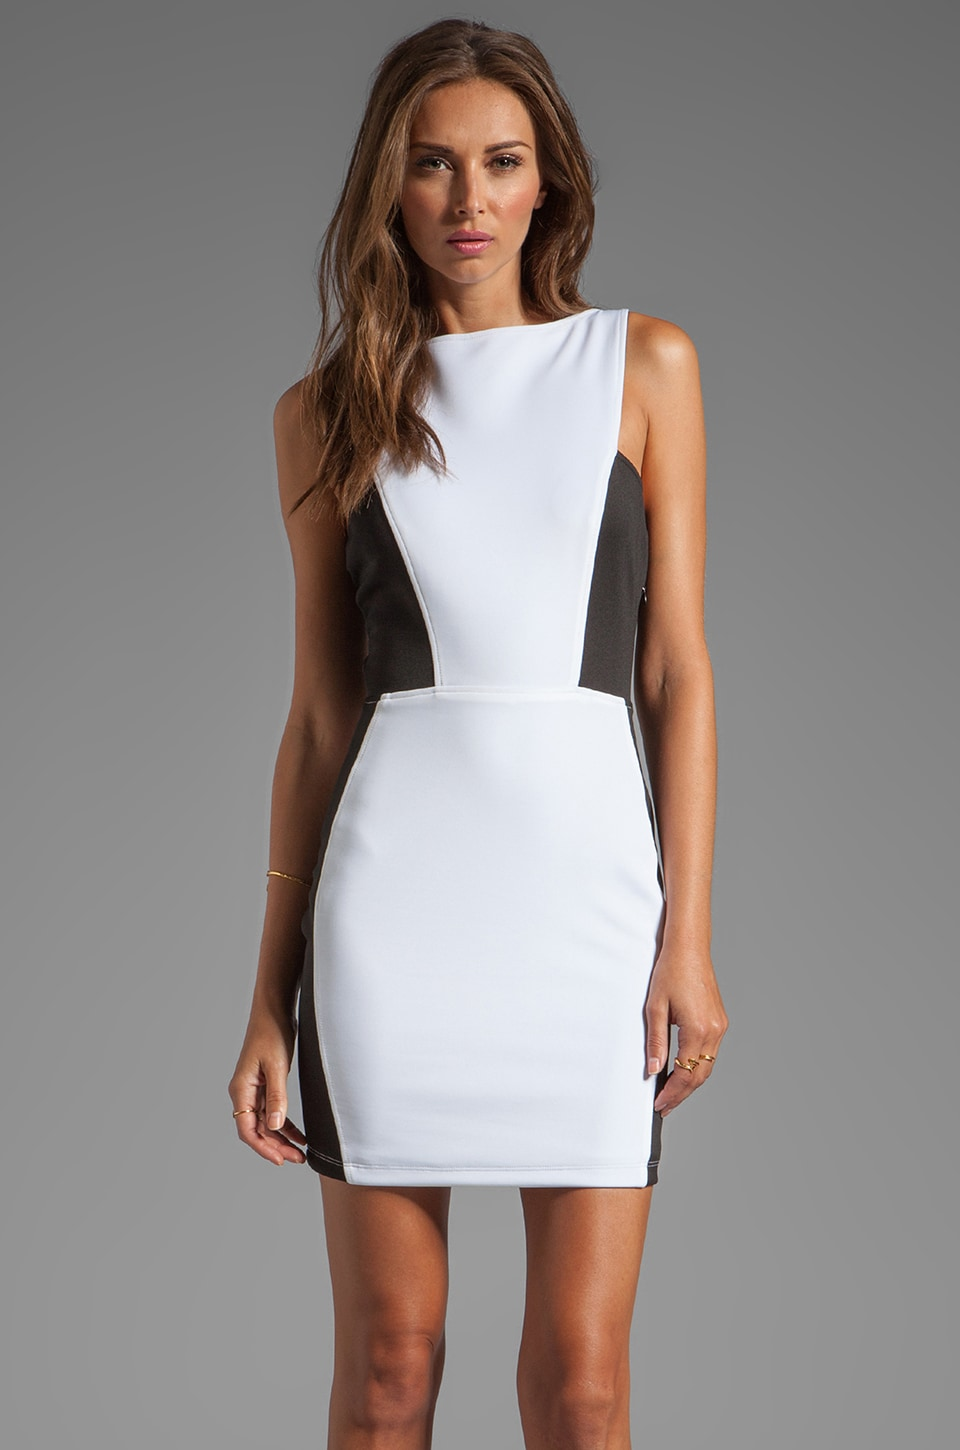 Boulee Demi Dress in White